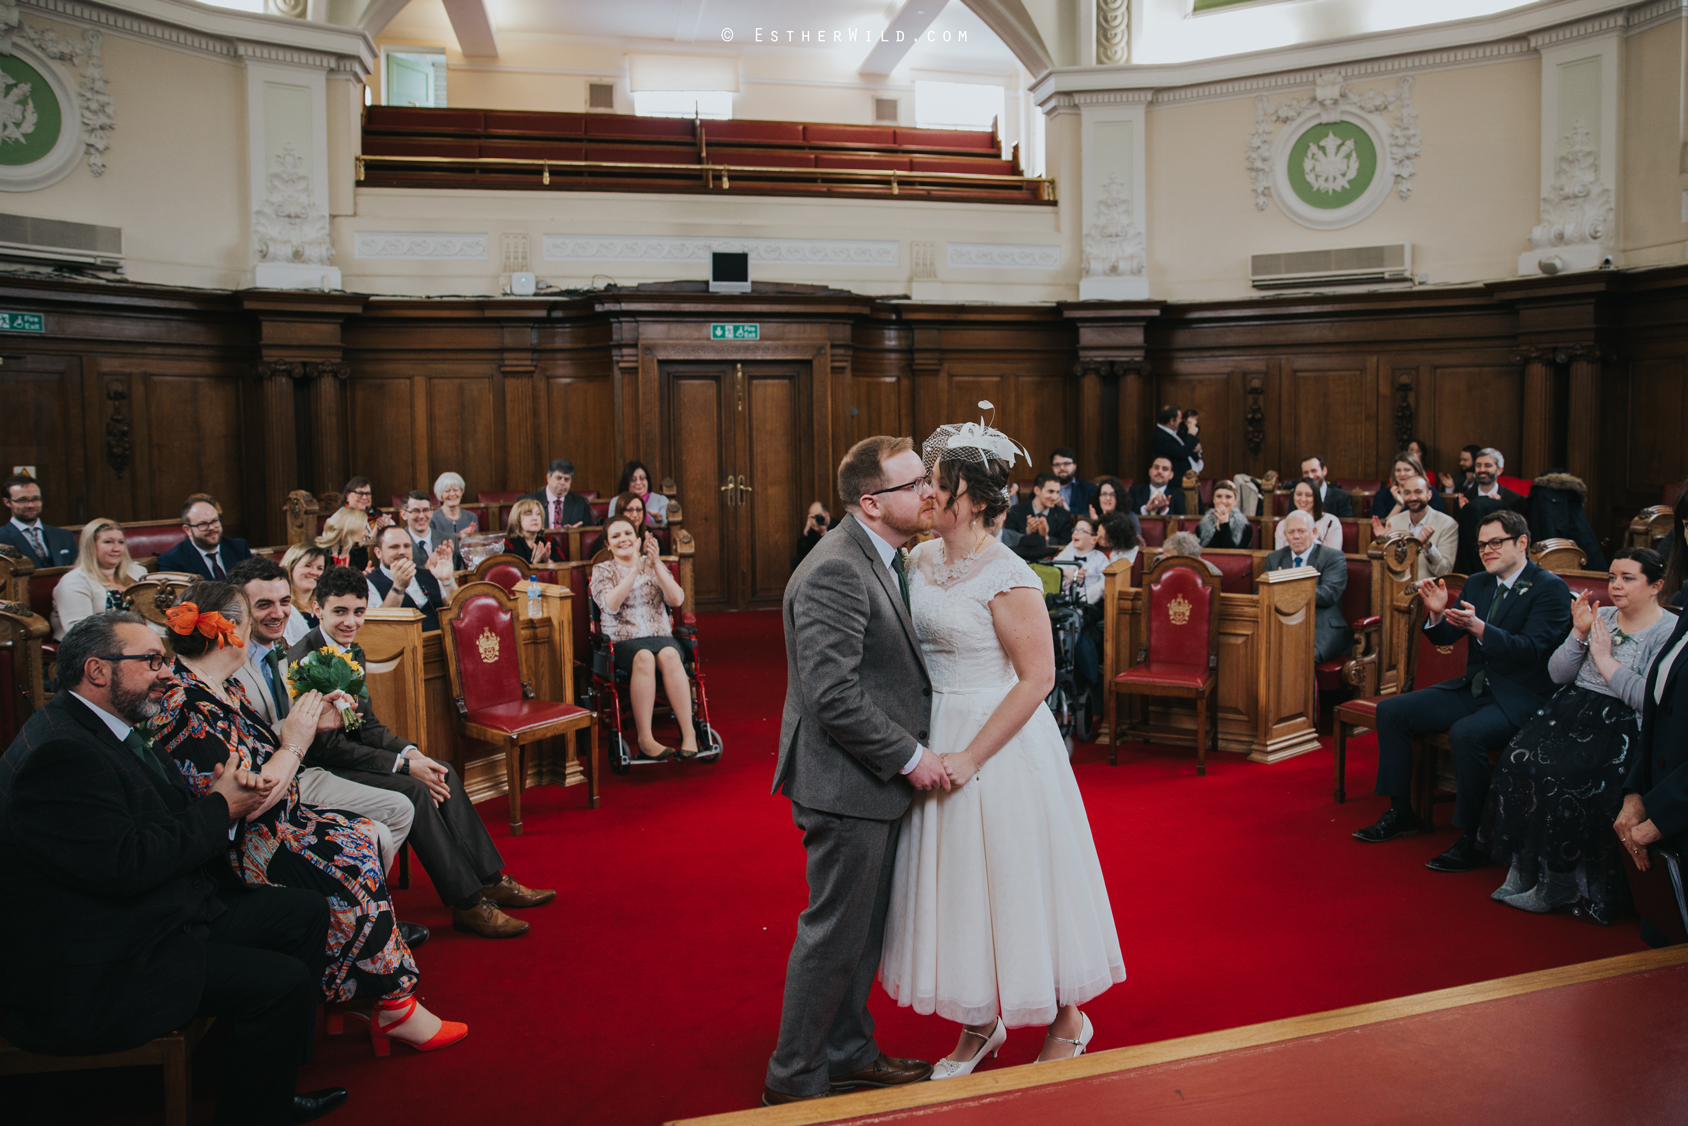 Islington_Town_Hall_Assembly_Hall_Council_Chamber_The_Star_Pub_London_Sacred_Wedding_Copyright_Esther_Wild_Photographer_IMG_0406.jpg